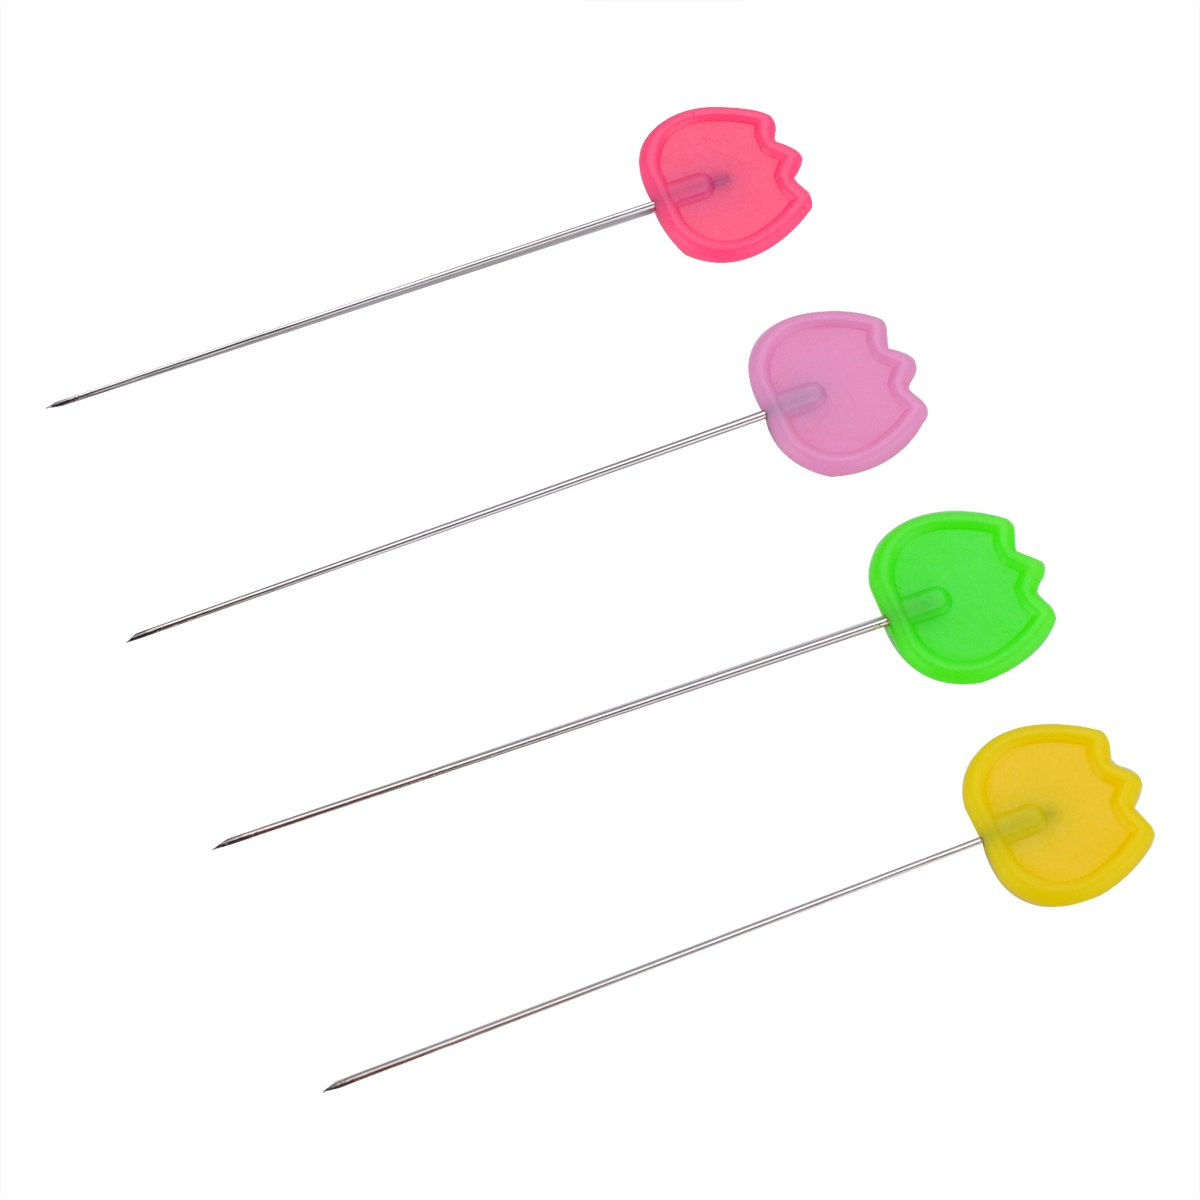 TECH-P 2 Multi-color Dressmaking Straight Pins Head Pins For Sewing DIY Arts/&Crafts Projects-200 Pack Panda Head